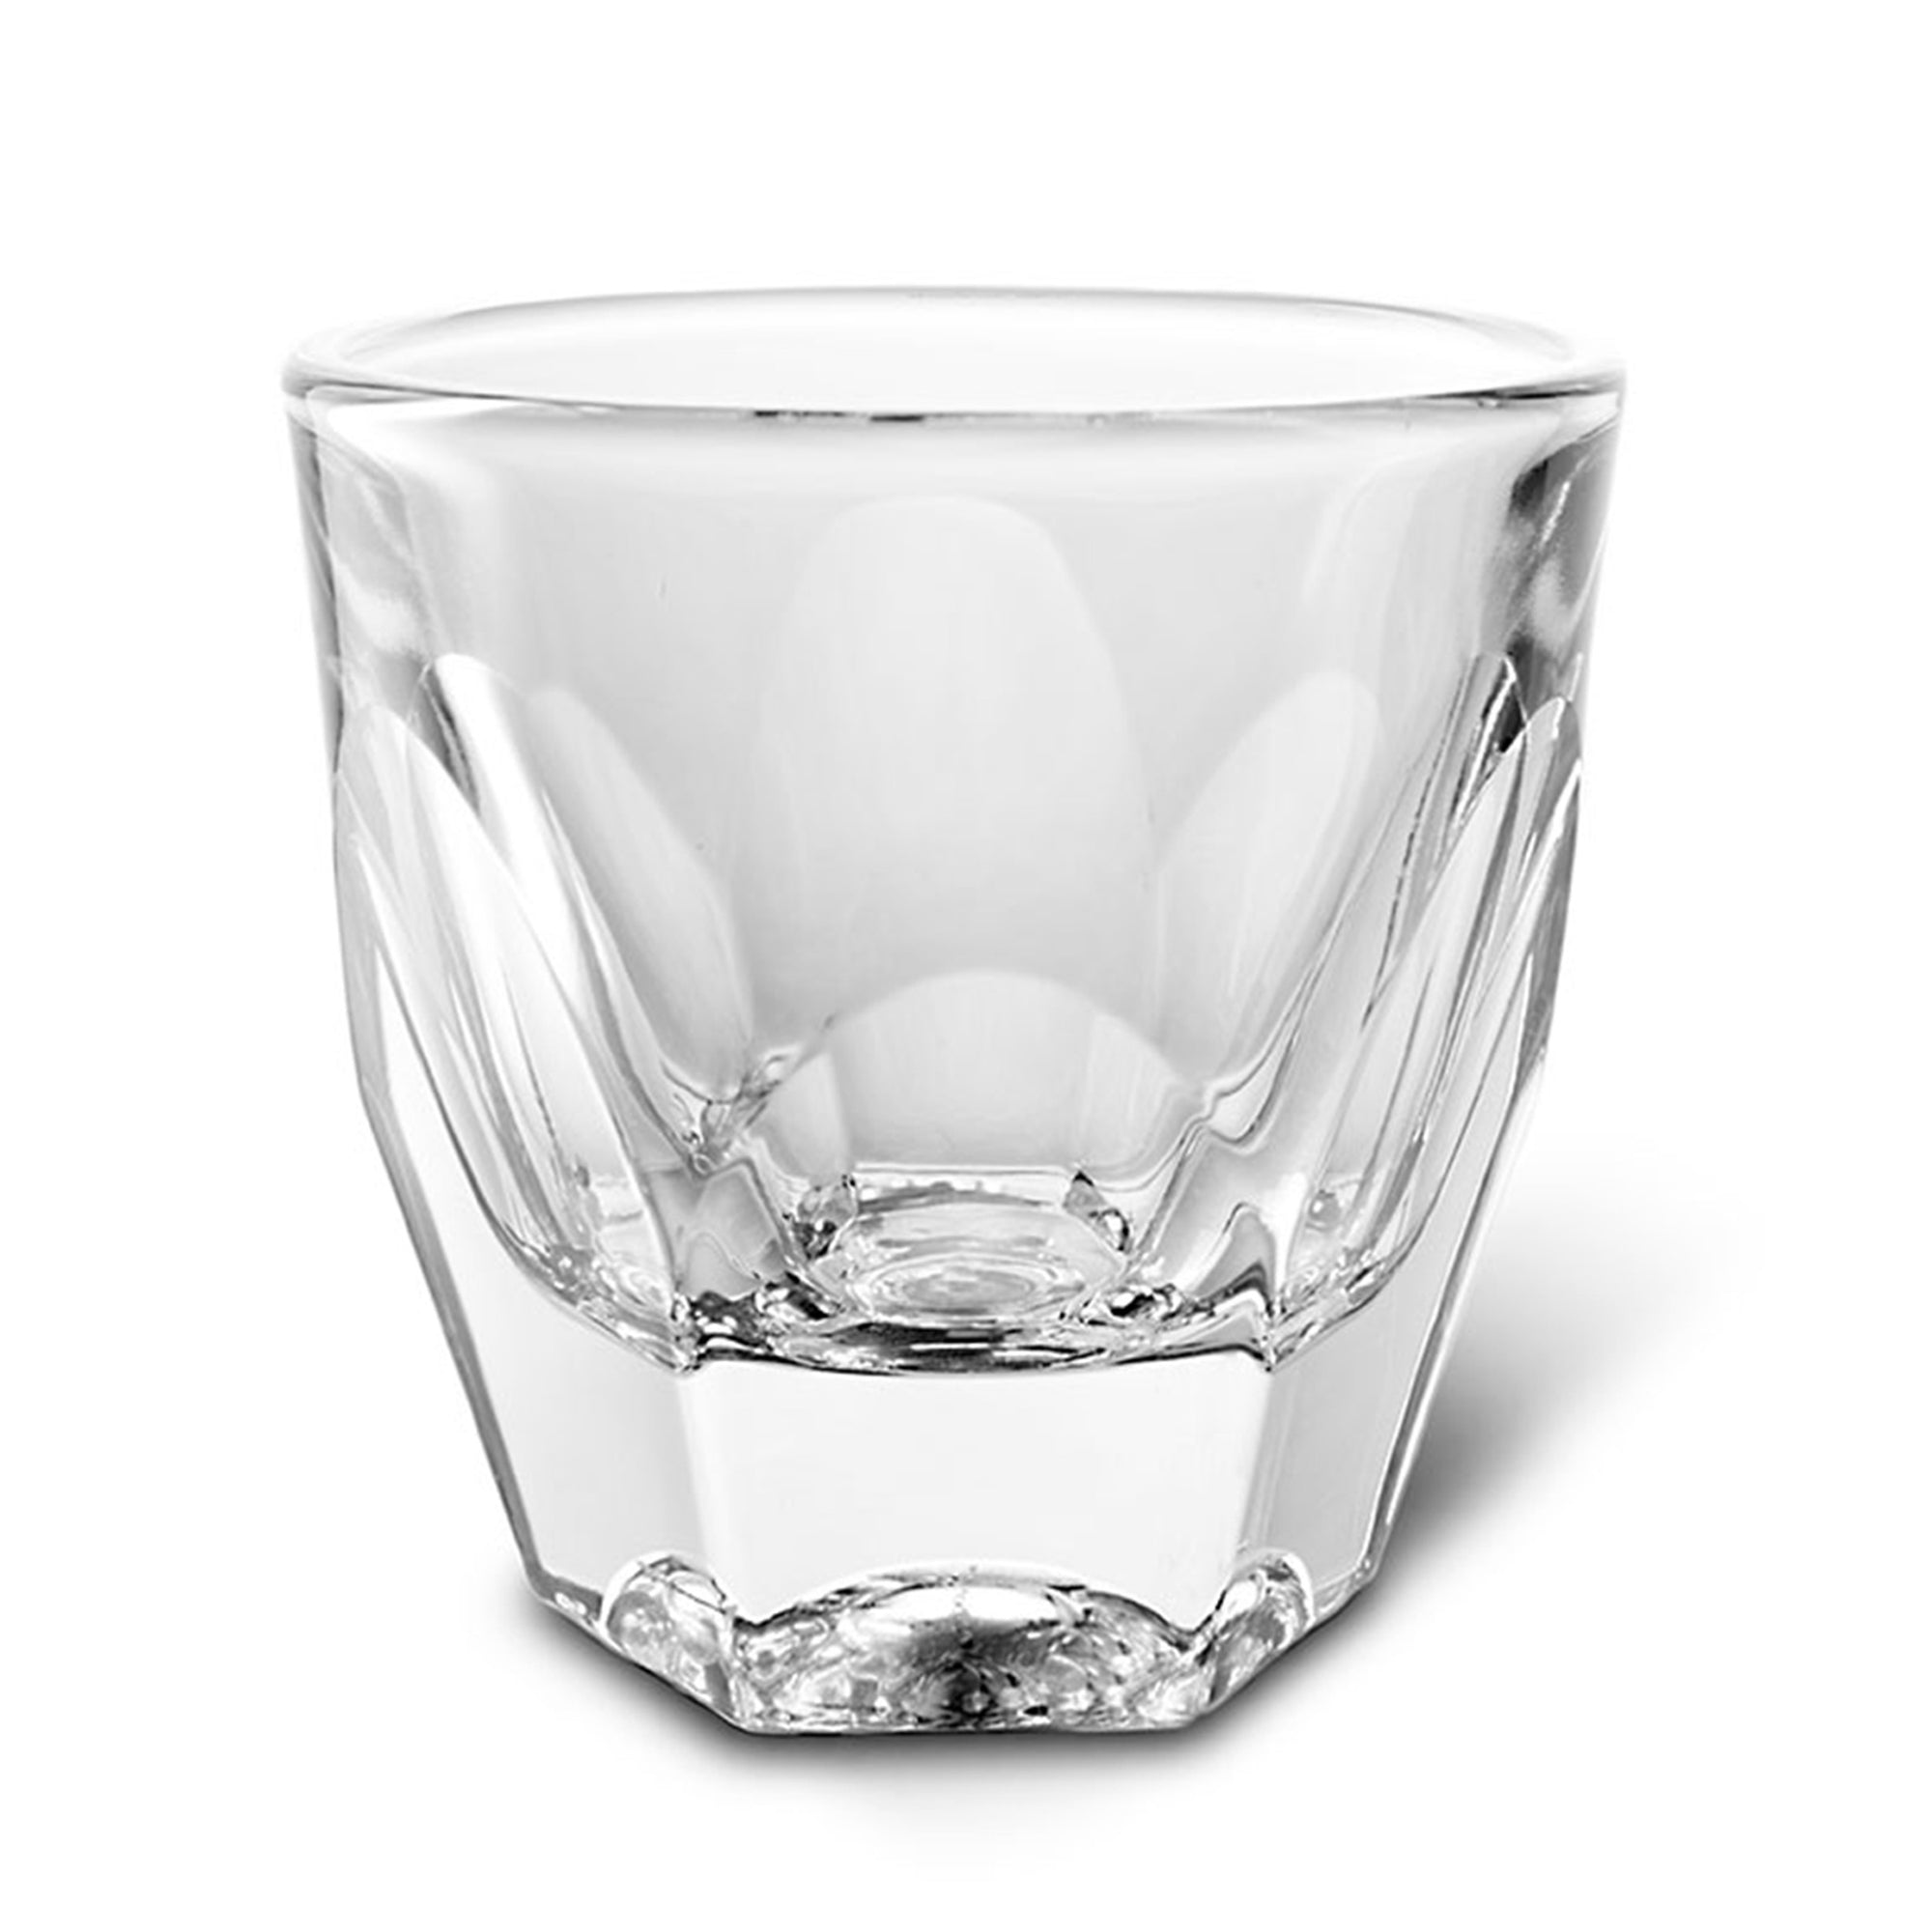 NN Vero Cappuccino Glass  - Clear 177ml - Espresso Gear